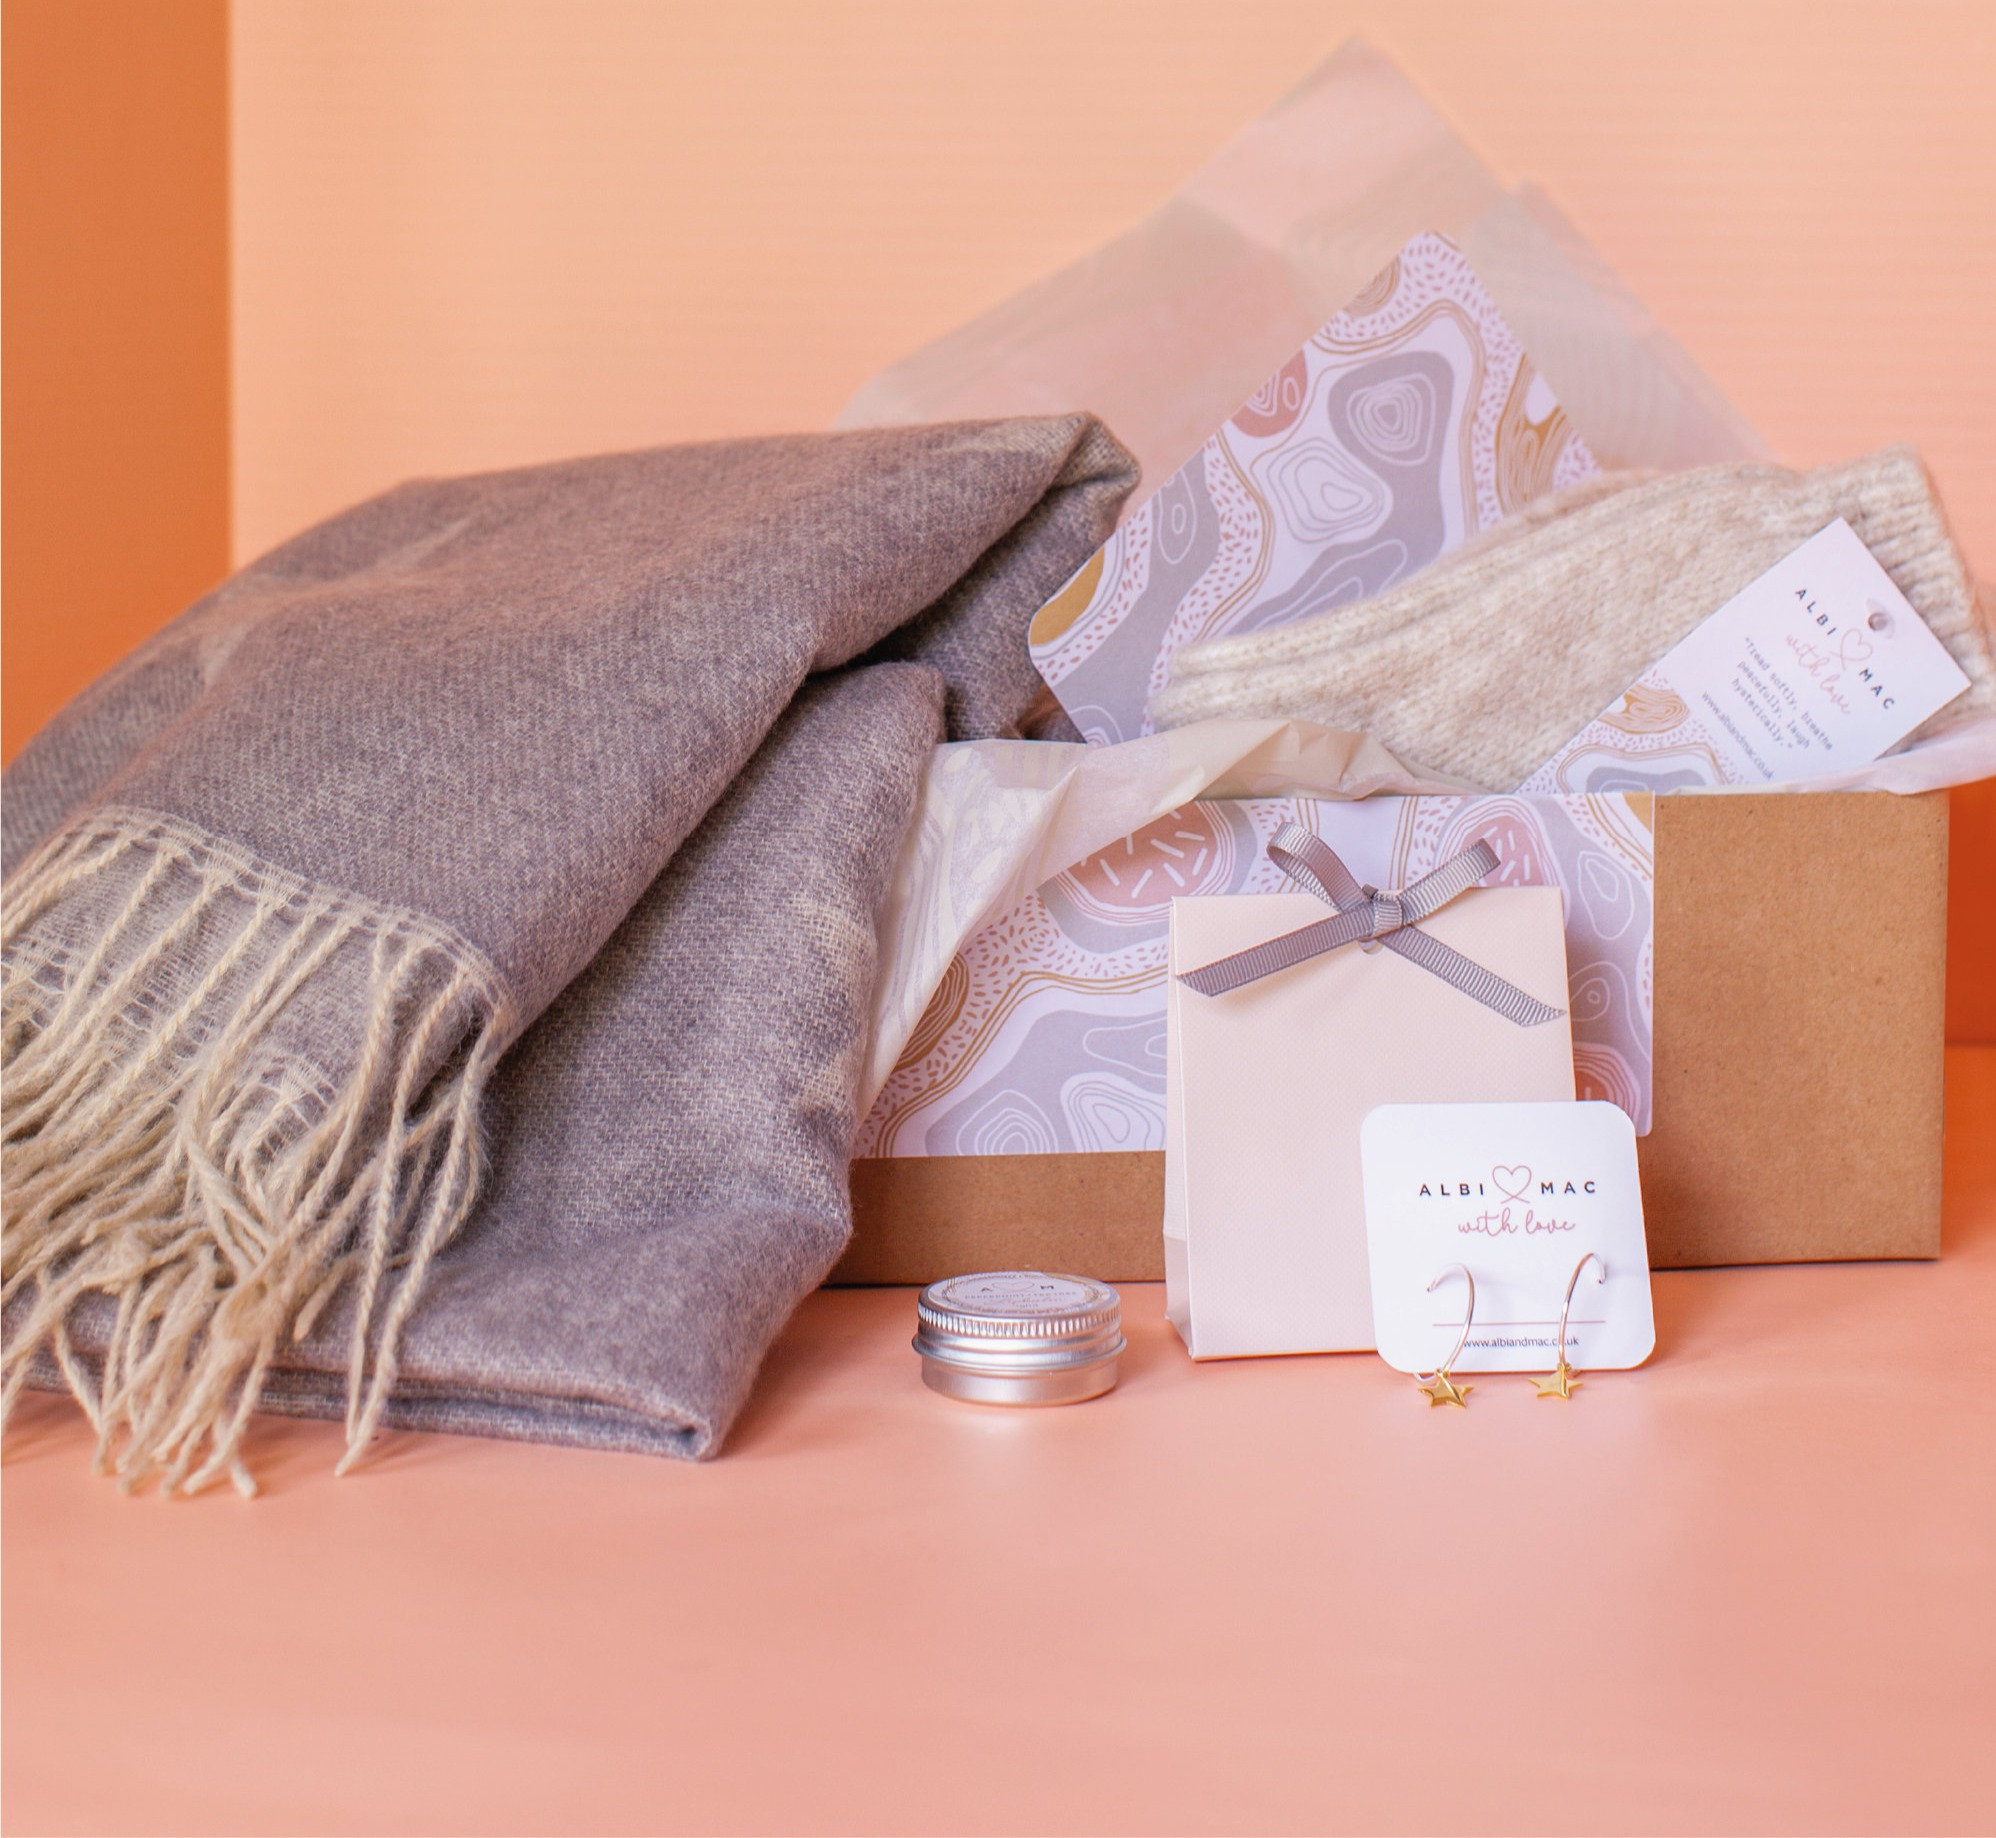 Albi & Mac Scarf with faint stars in a gift box